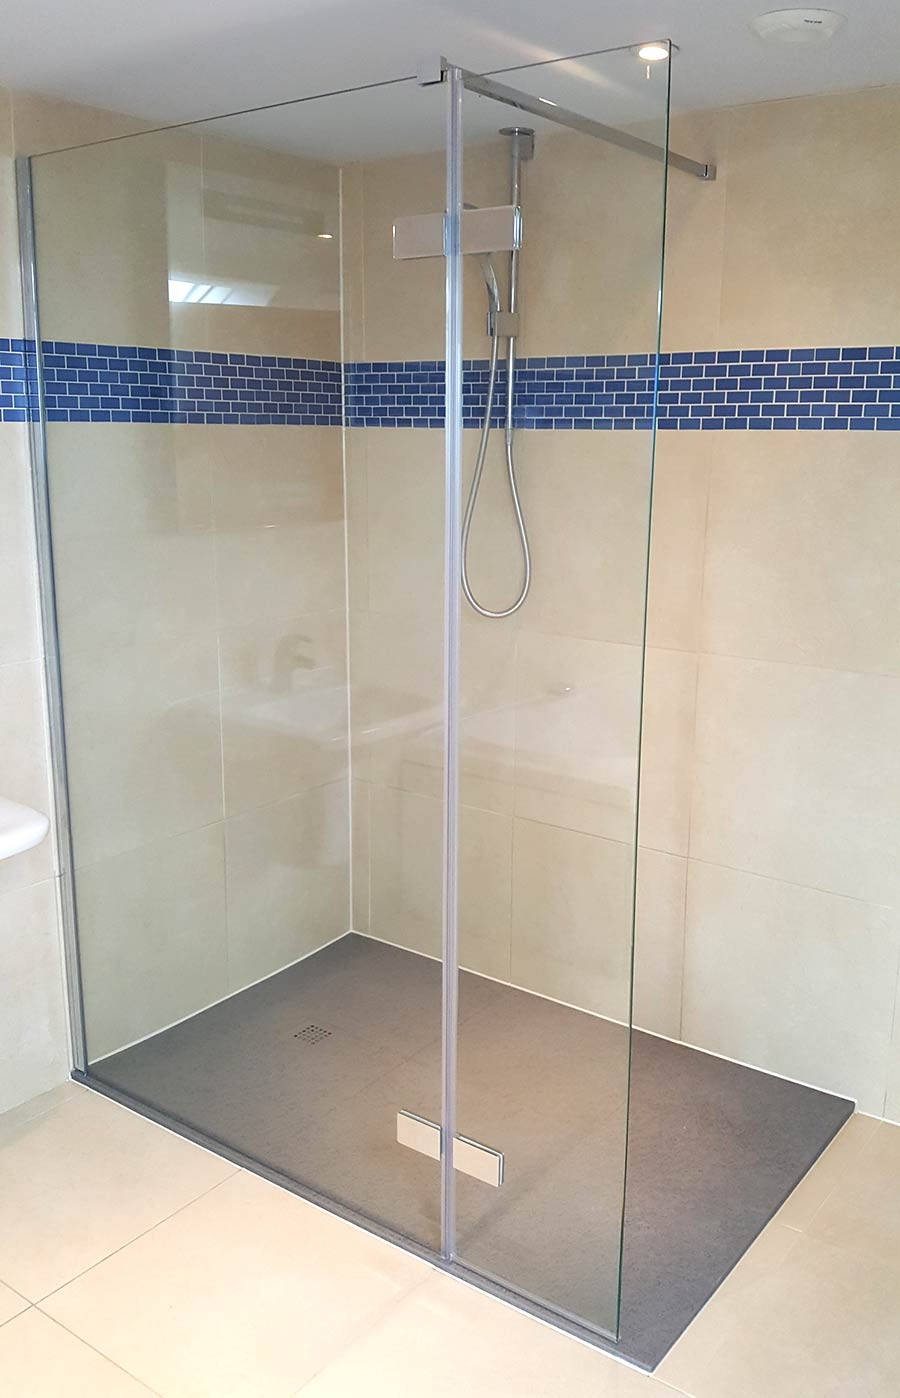 New Simpsons Elite walk-in shower enclosure installed in a wetroom by Room H2o